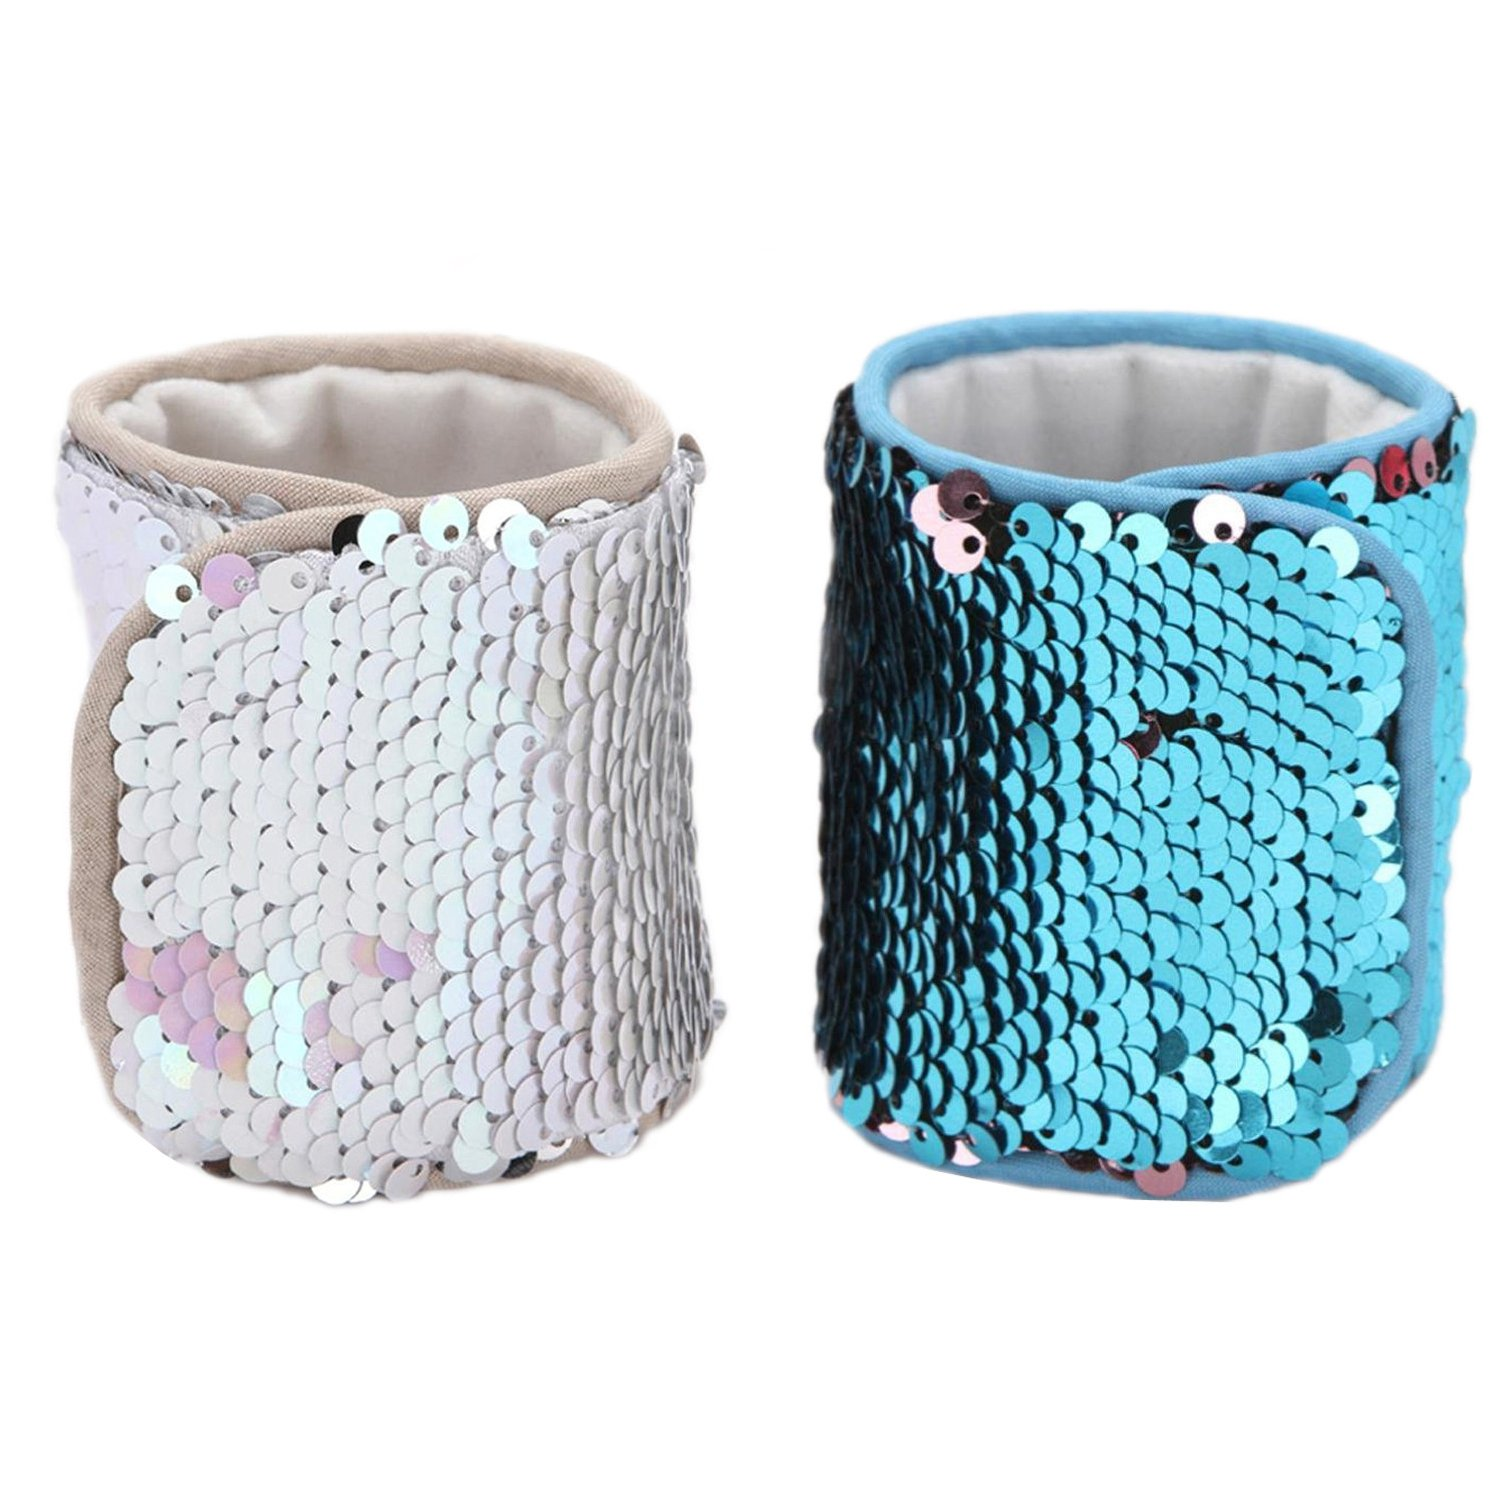 Mermaid Bracelet for Party Favors, Christmas Gifts, Two-color Reversible Charm Sequins Wristband Magic Calming Bracelets for Kids, Girls, Boys - Super-soft Velvet Lining (2Pack-A, velvet) RC-MB